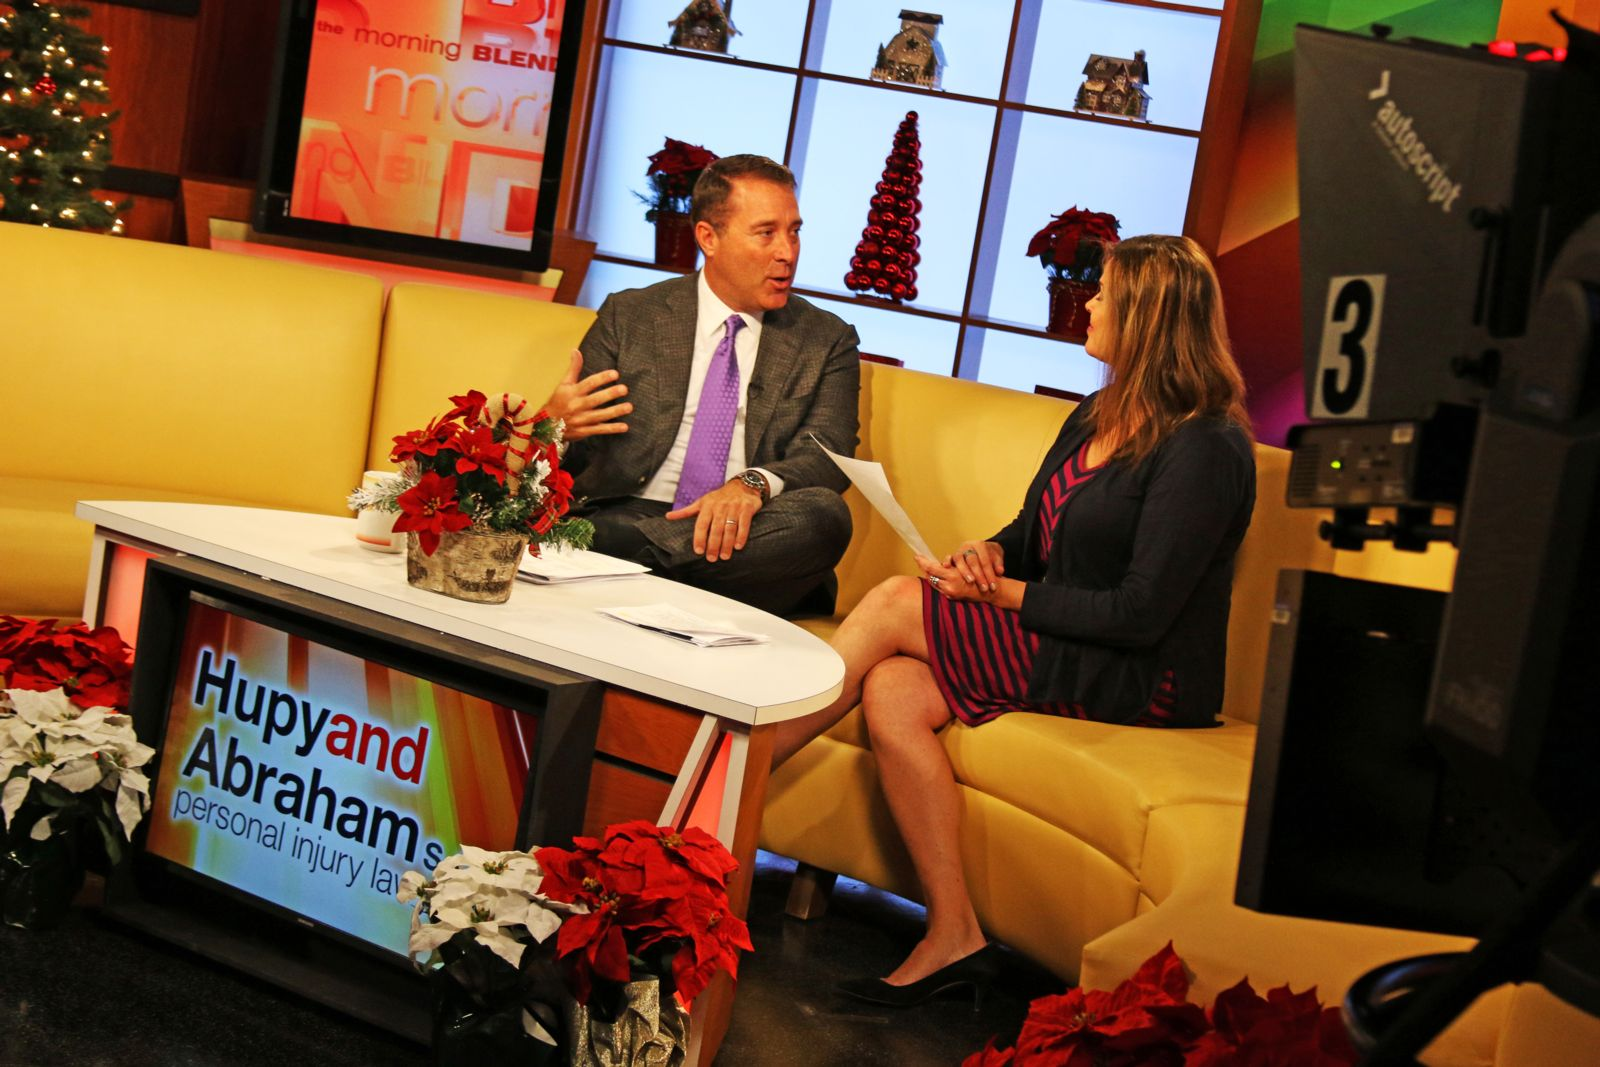 Attorney Jason Abraham on The Morning Blend